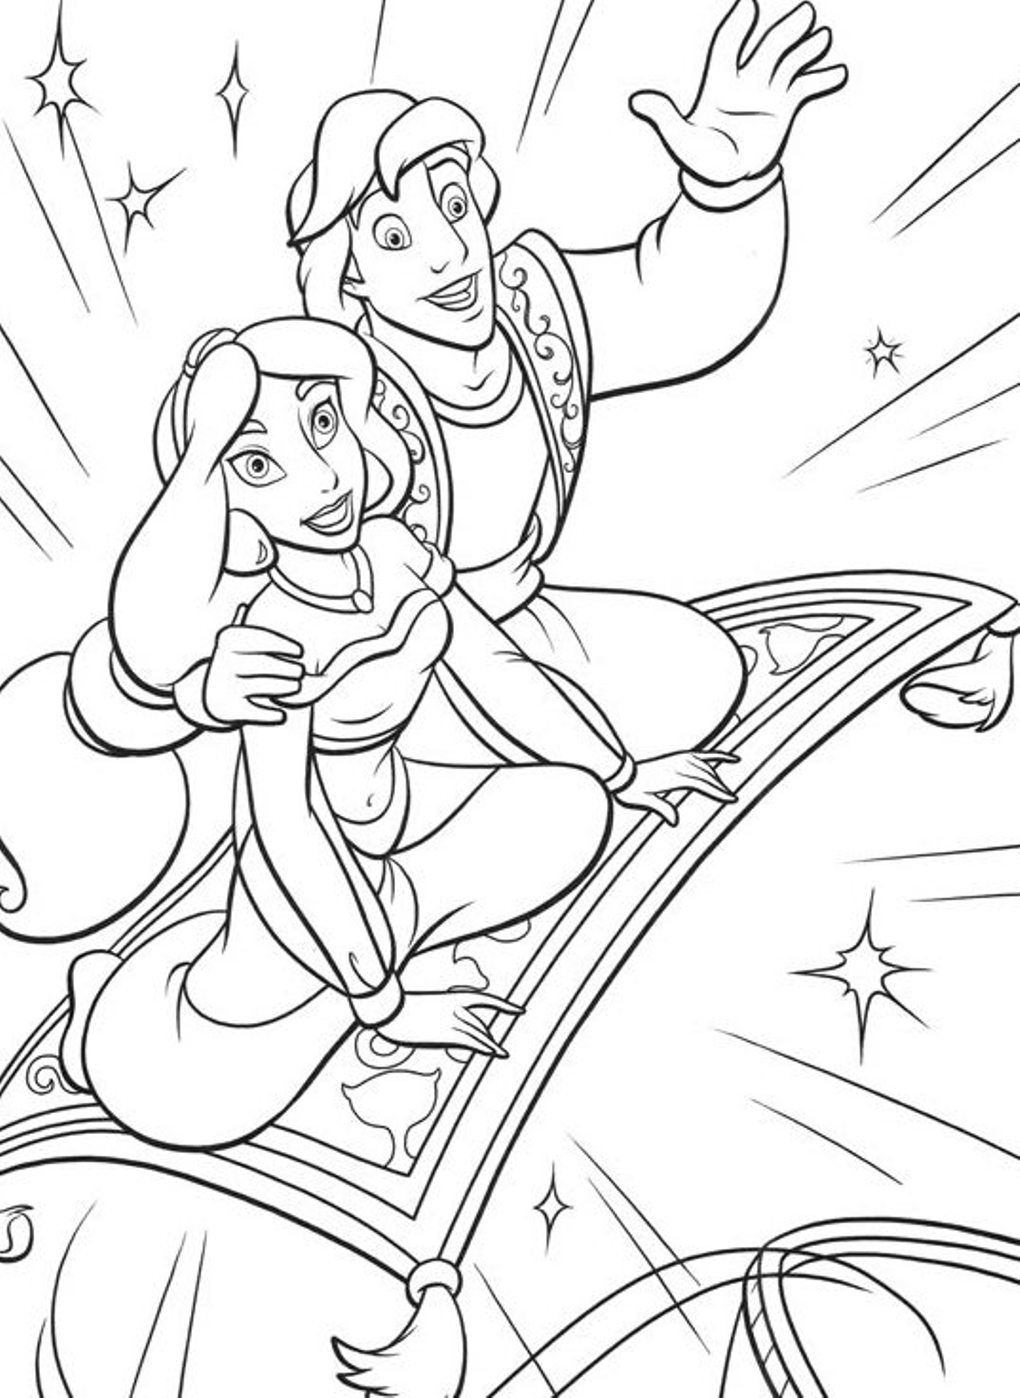 jasmine coloring pages Only Coloring